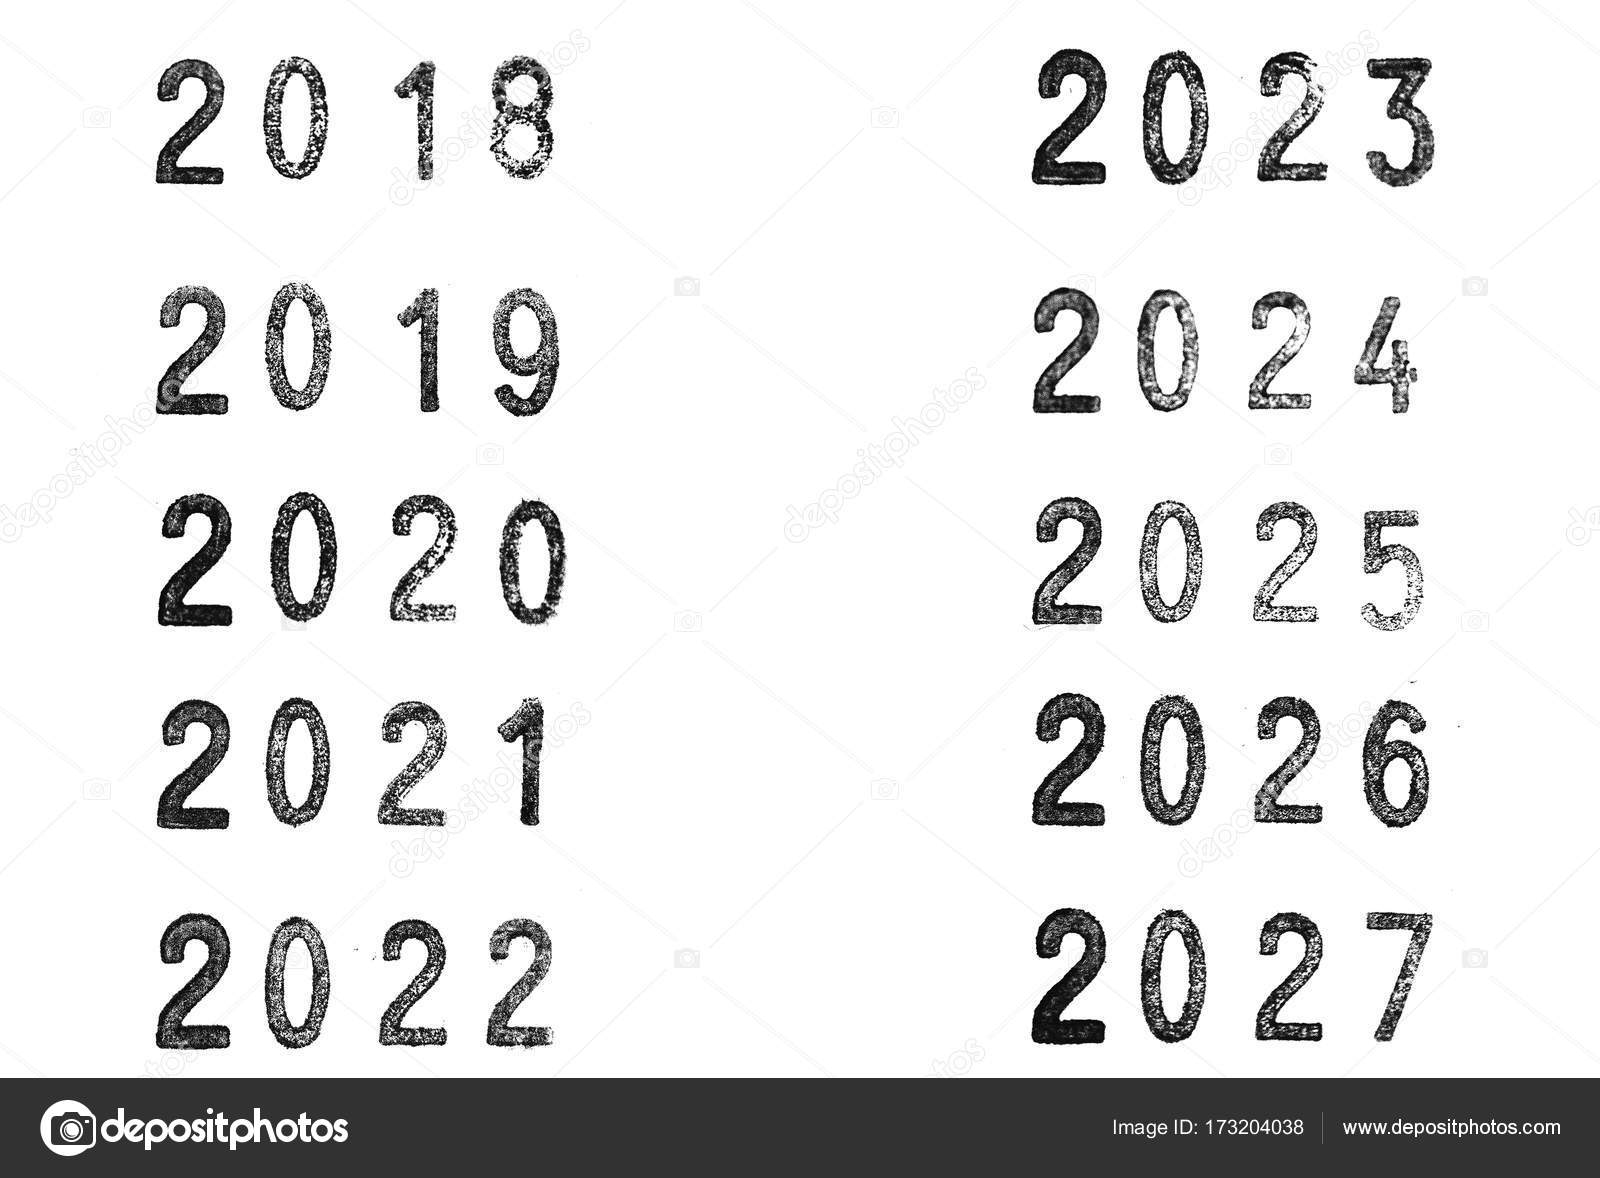 Stamped years with a rubber stamper from 2018 to 2027 — Stock Photo